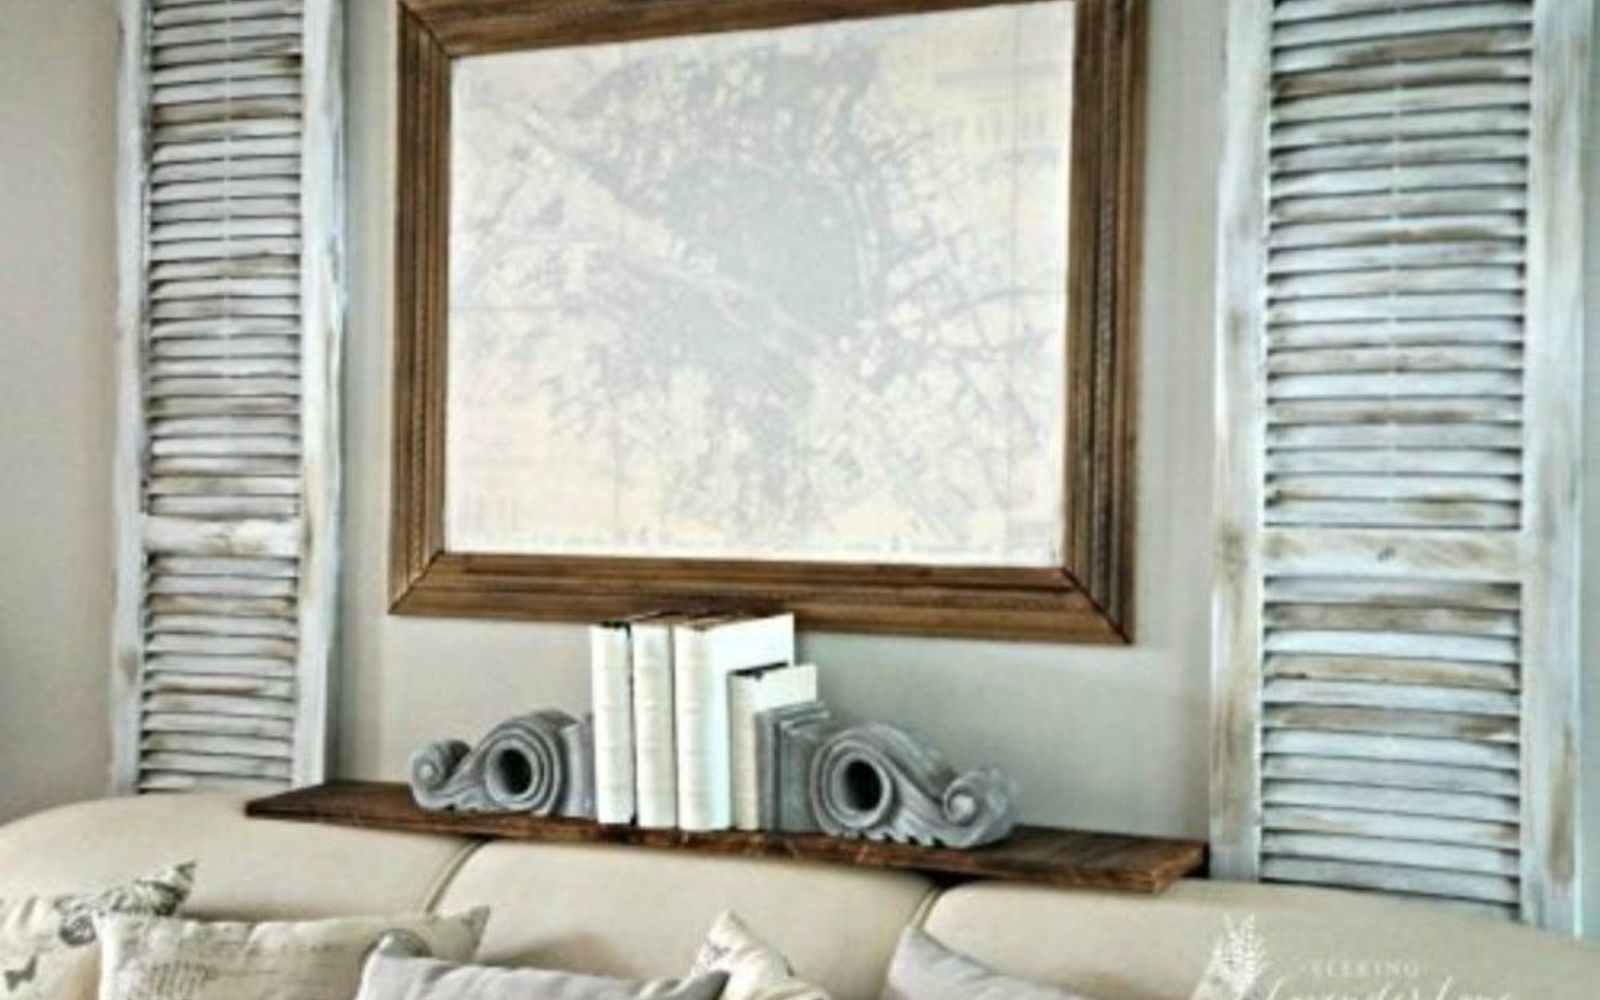 s 13 low budget ways to decorate your living room walls, go green, plumbing, Add some rustic shutters and a shelf